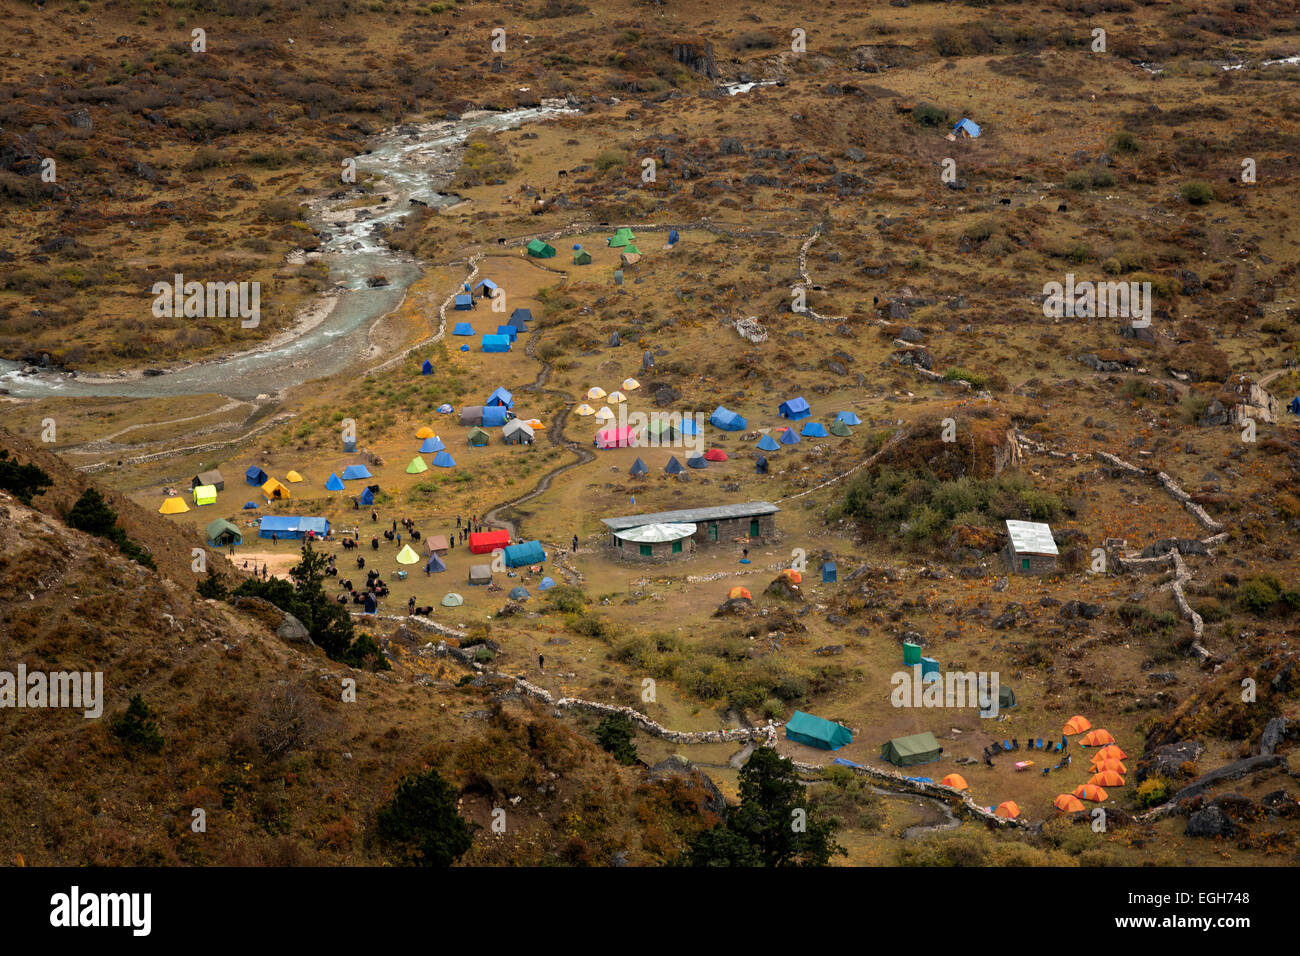 BU00200-00...BHUTAN - The very busy Jangothang Campsite in the open valley along the banks of the Paro River. - Stock Image